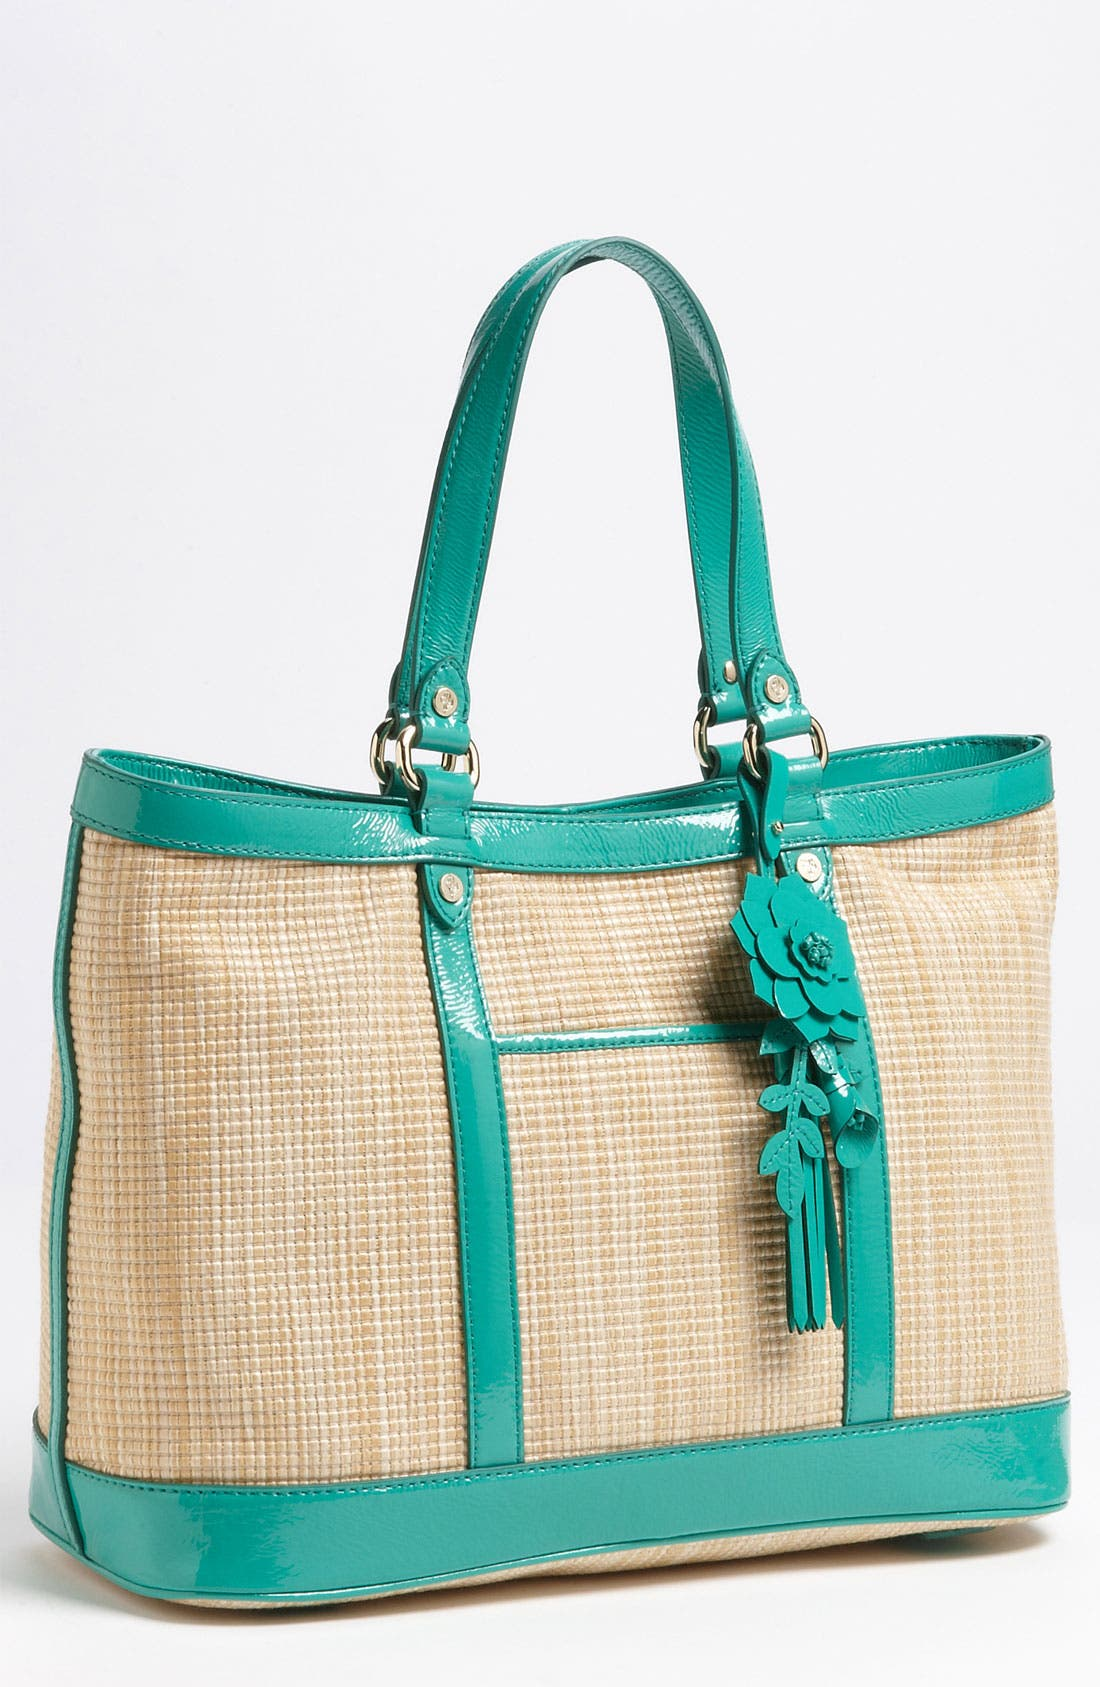 Alternate Image 1 Selected - Cole Haan 'Jitney Straw - Serena Small' Tote